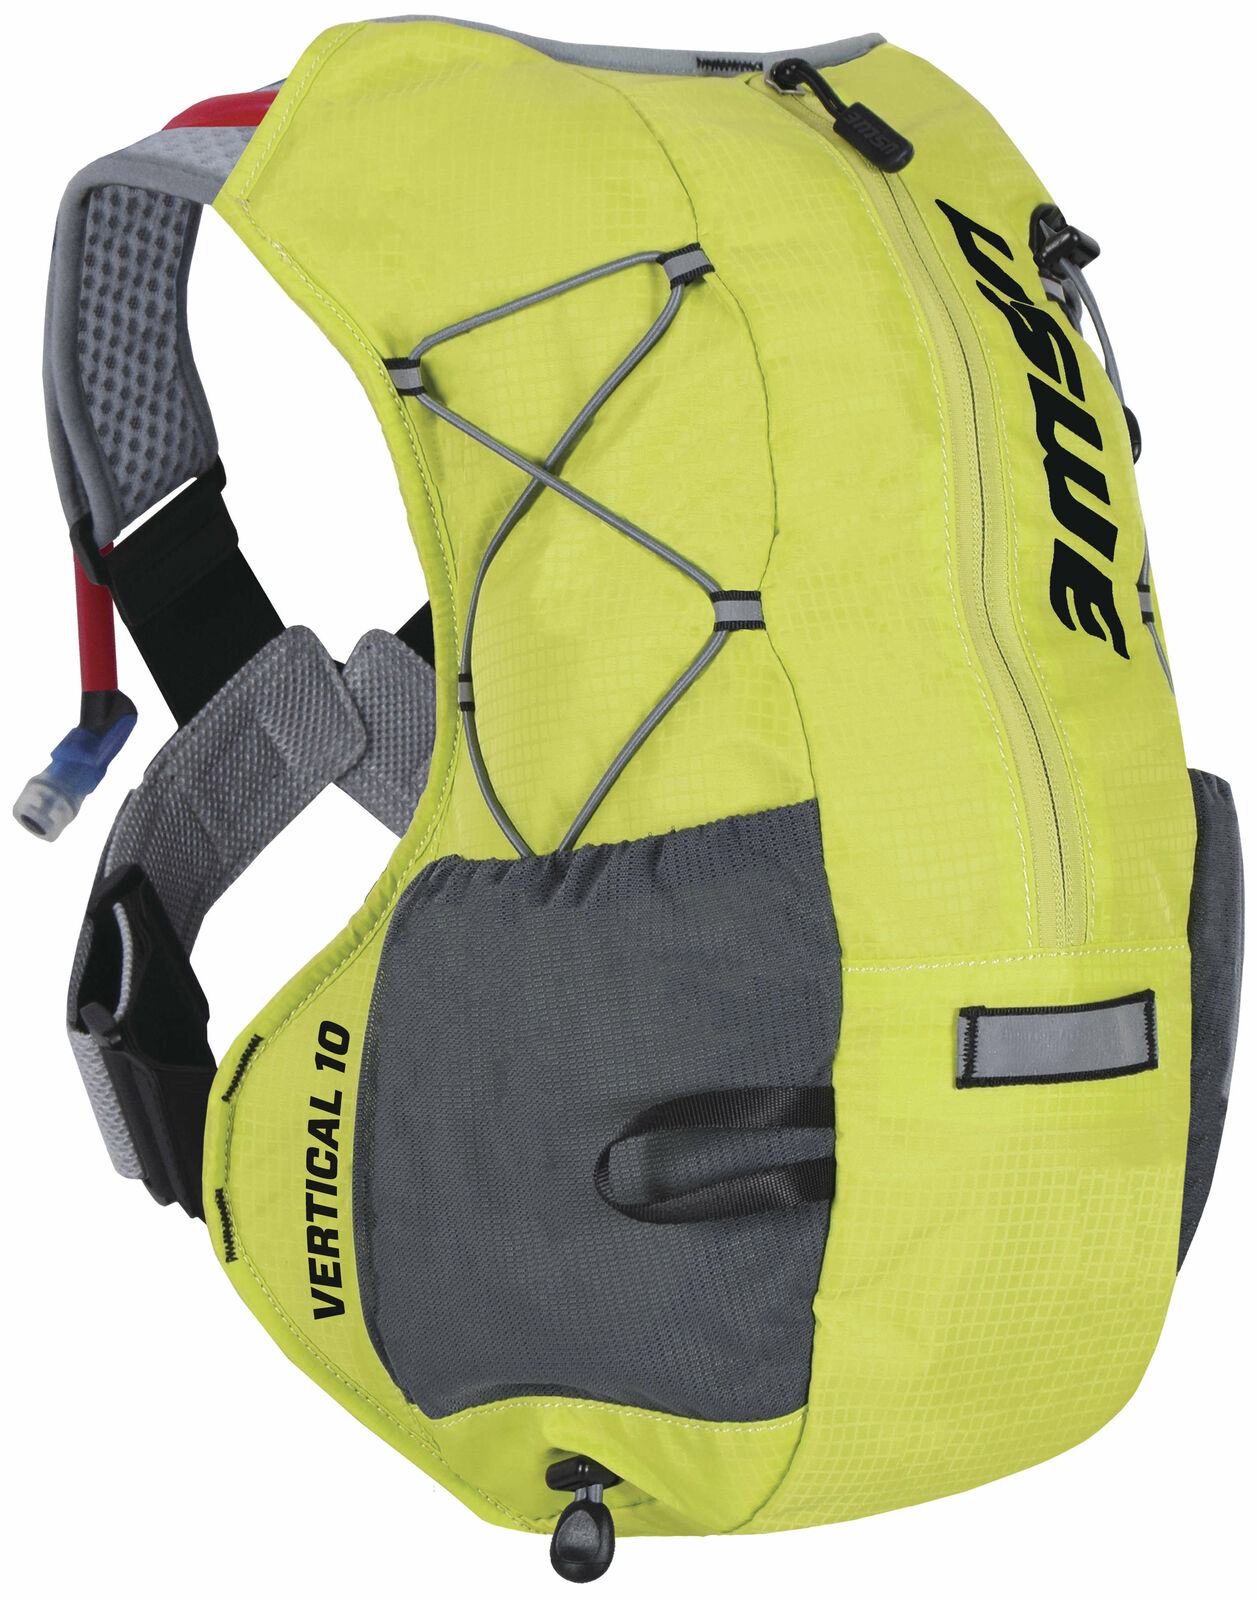 USWE Grünical 10L Plus Unisex Backpack, 480 Grams w  2L Hydration Pack Gelb